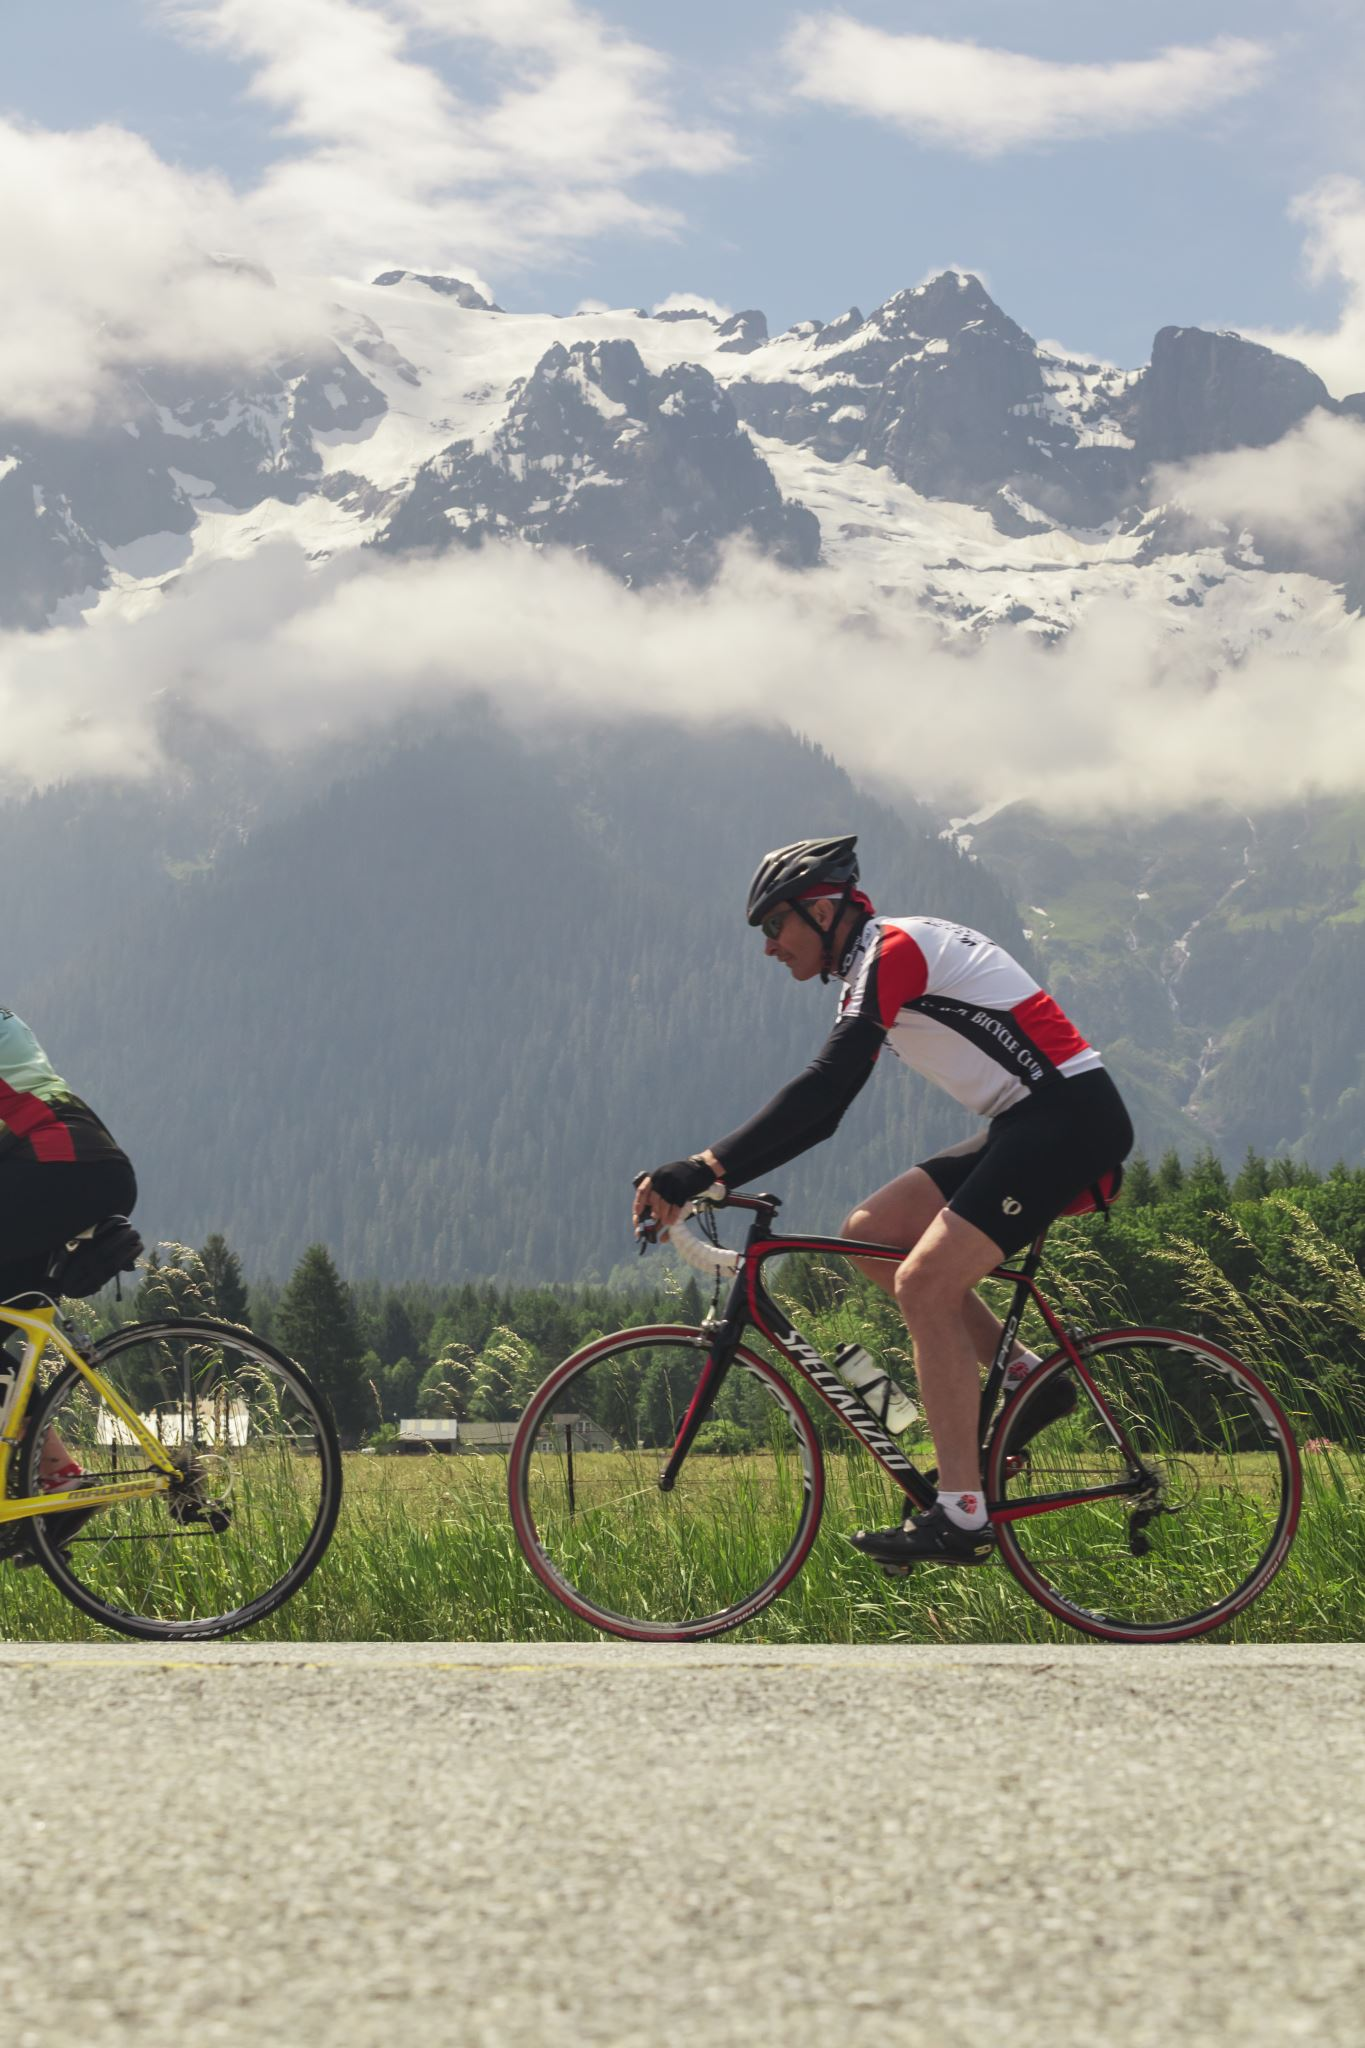 Two cyclists on road bikes in front of mountain